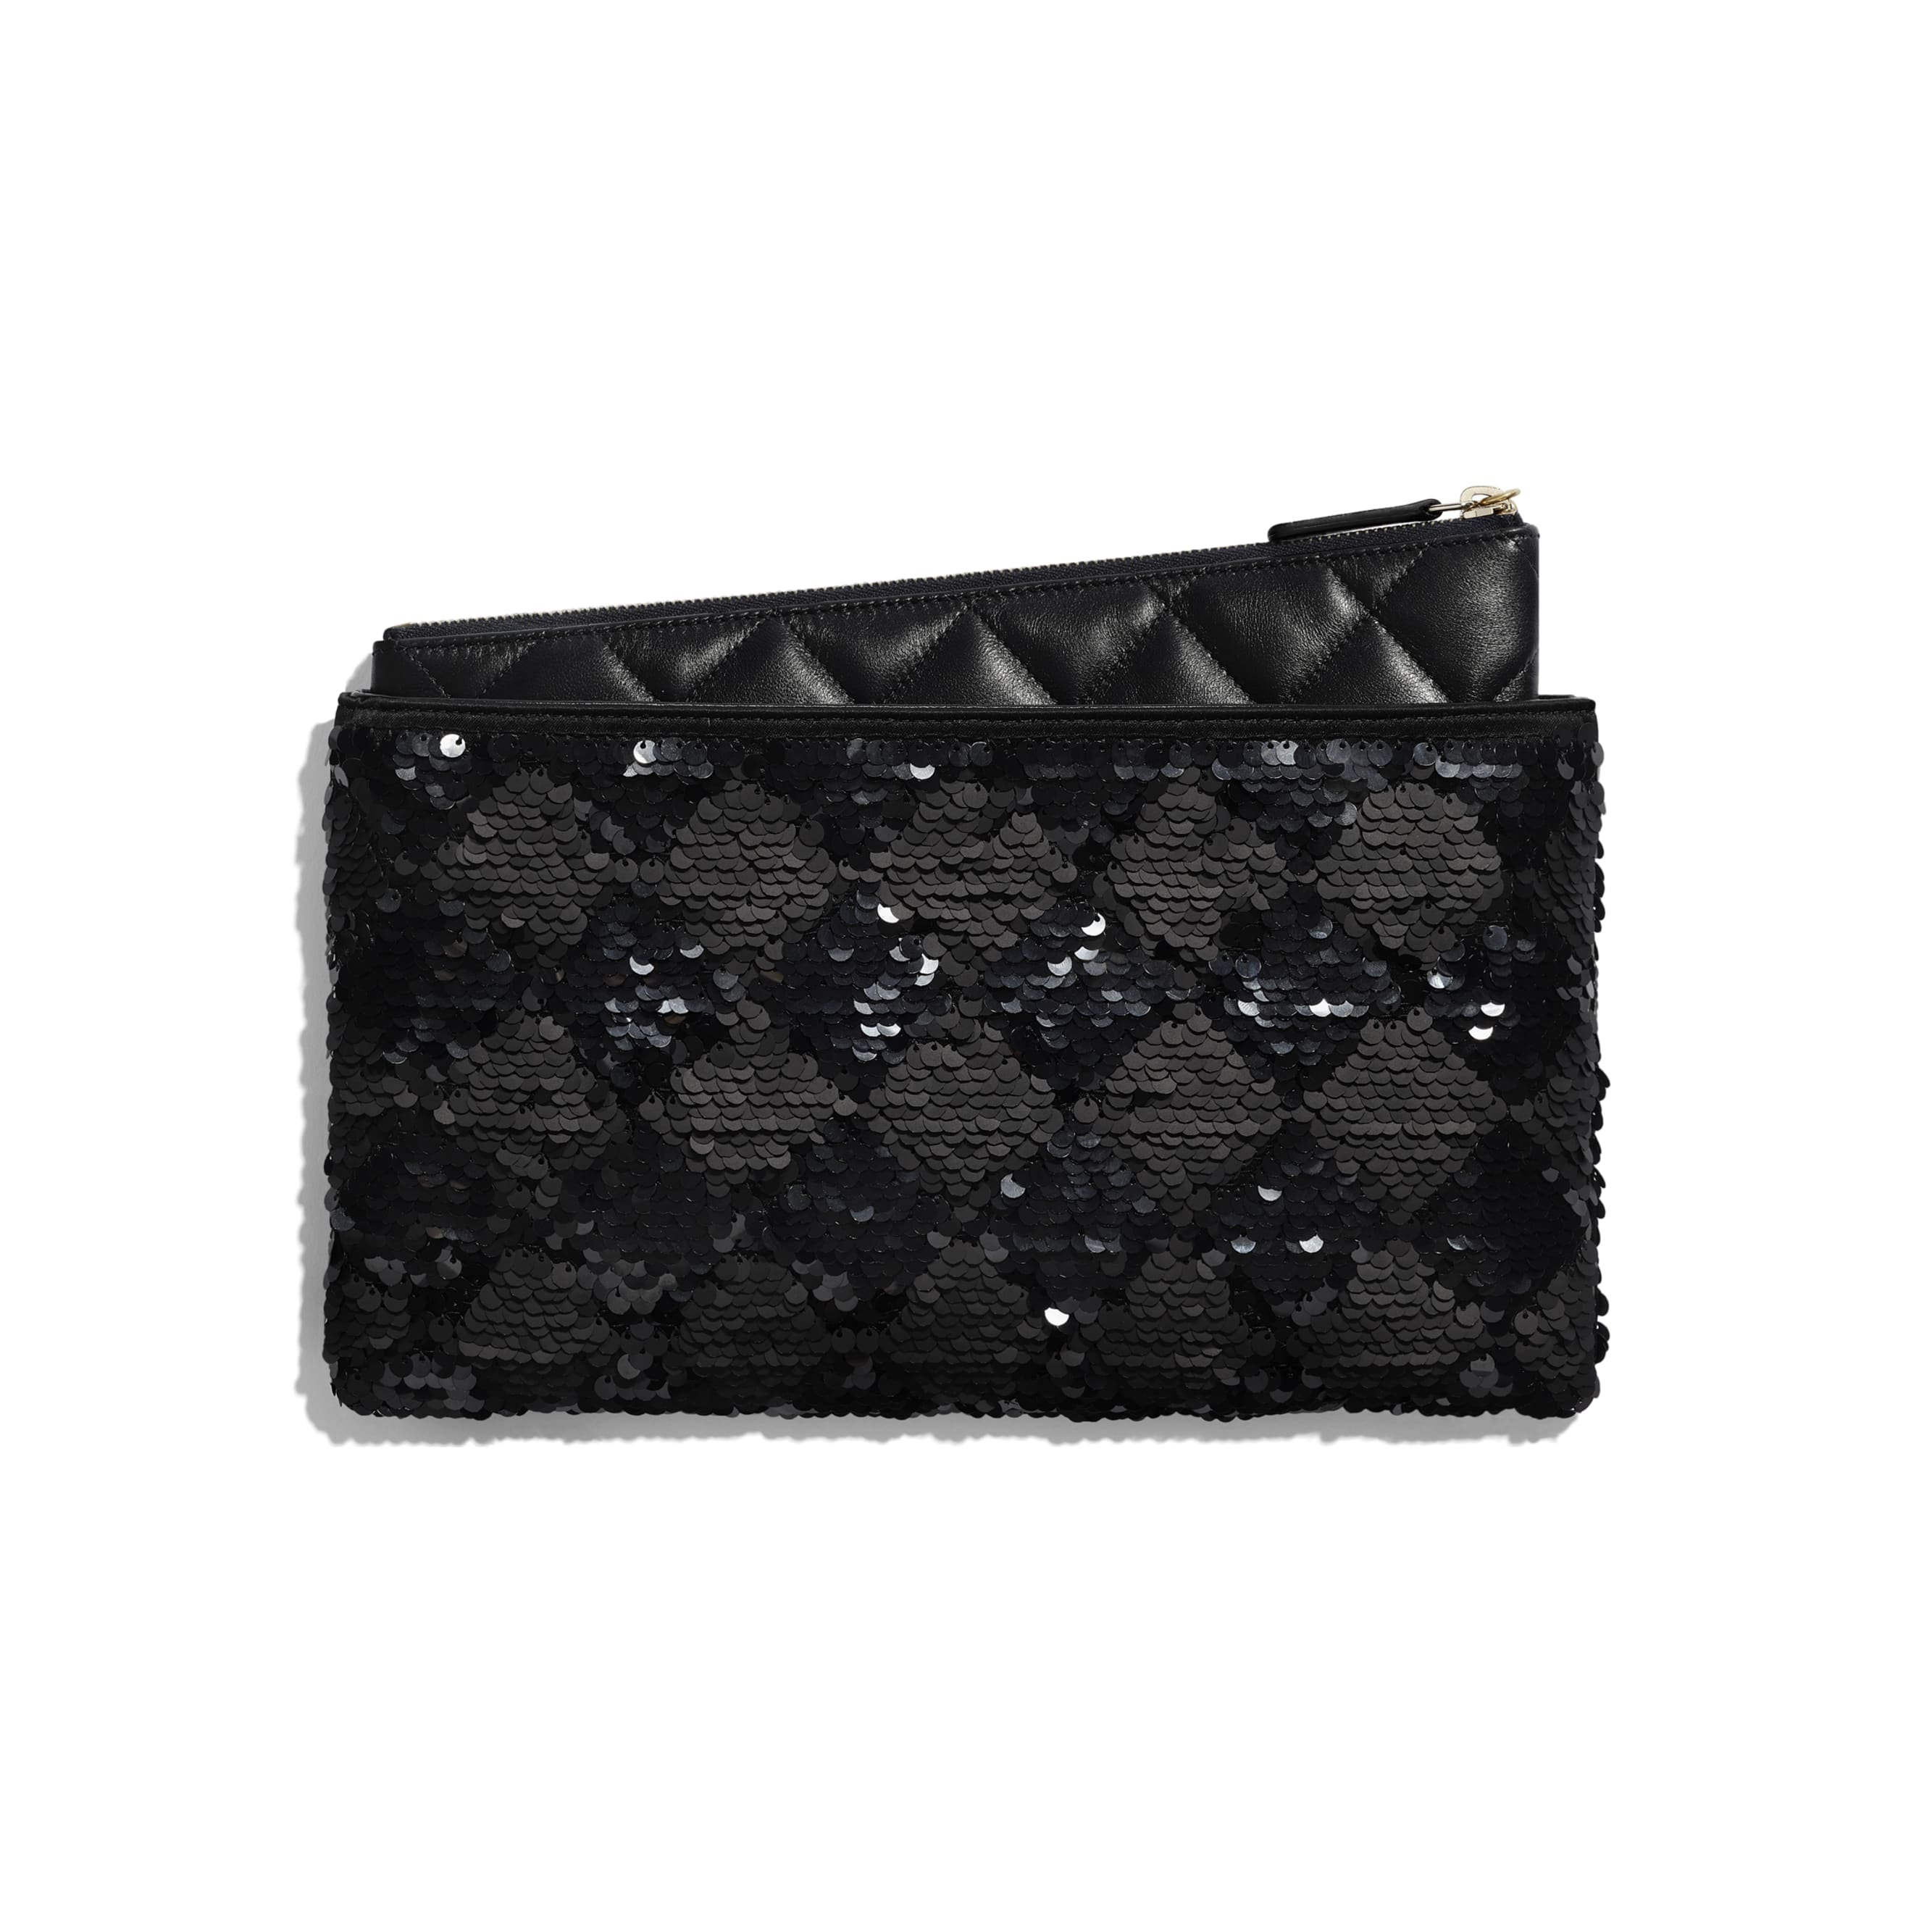 Pouch - Black - Sequins, Lambskin & Gold-Tone Metal - Alternative view - see standard sized version